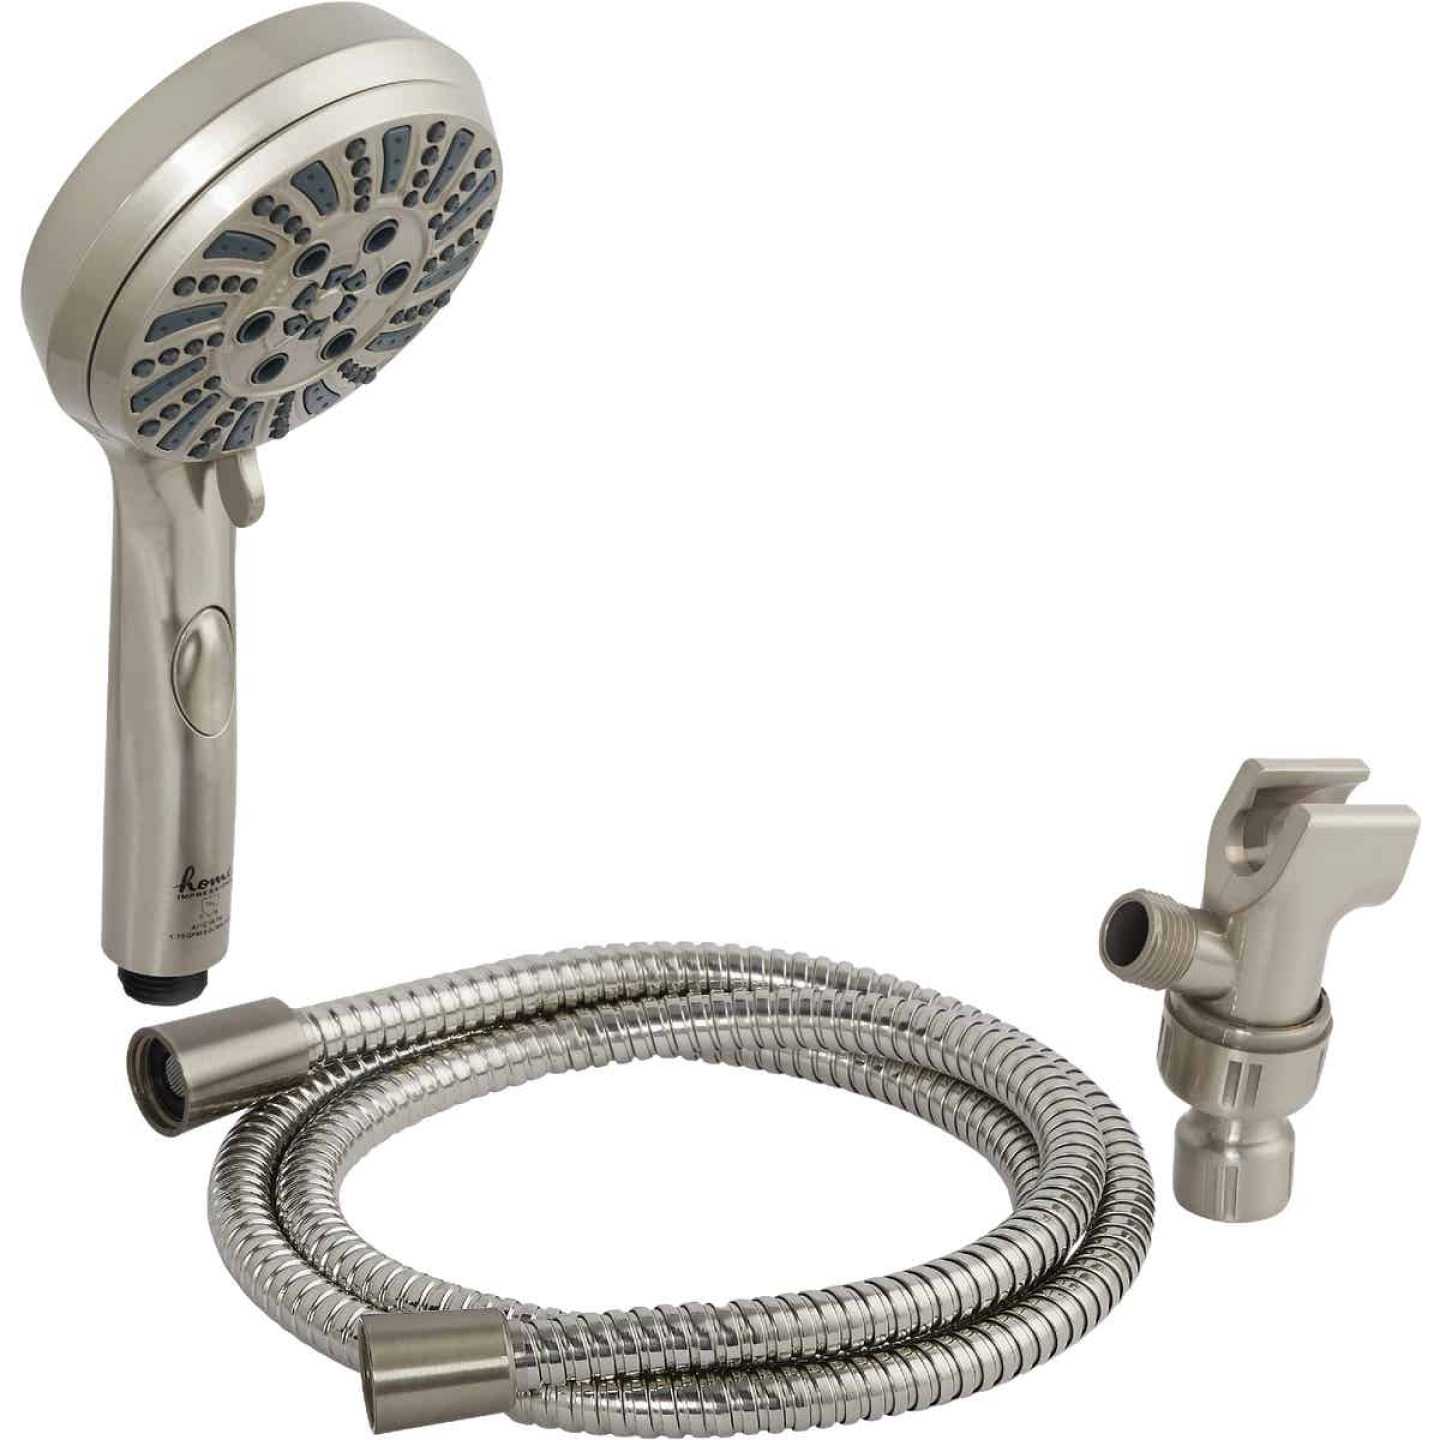 Home Impressions 6-Spray 1.8 GPM Handheld Shower, Brushed Nickel Image 3